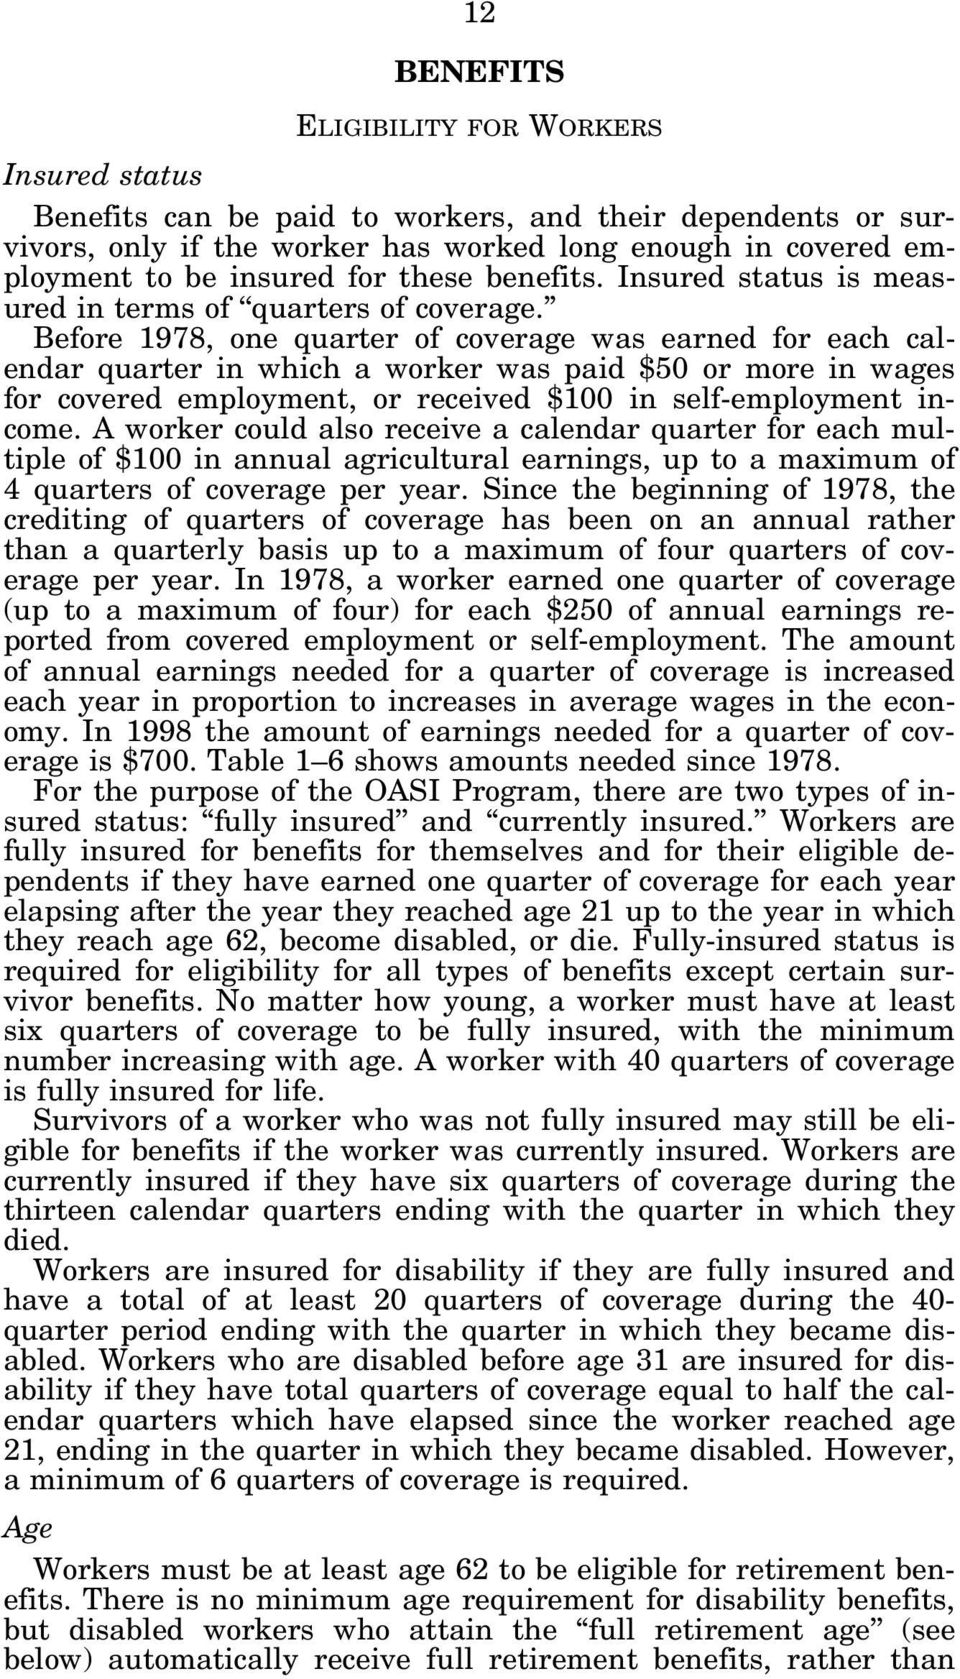 Before 1978, one quarter of coverage was earned for each calendar quarter in which a worker was paid $50 or more in wages for covered employment, or received $100 in self-employment income.